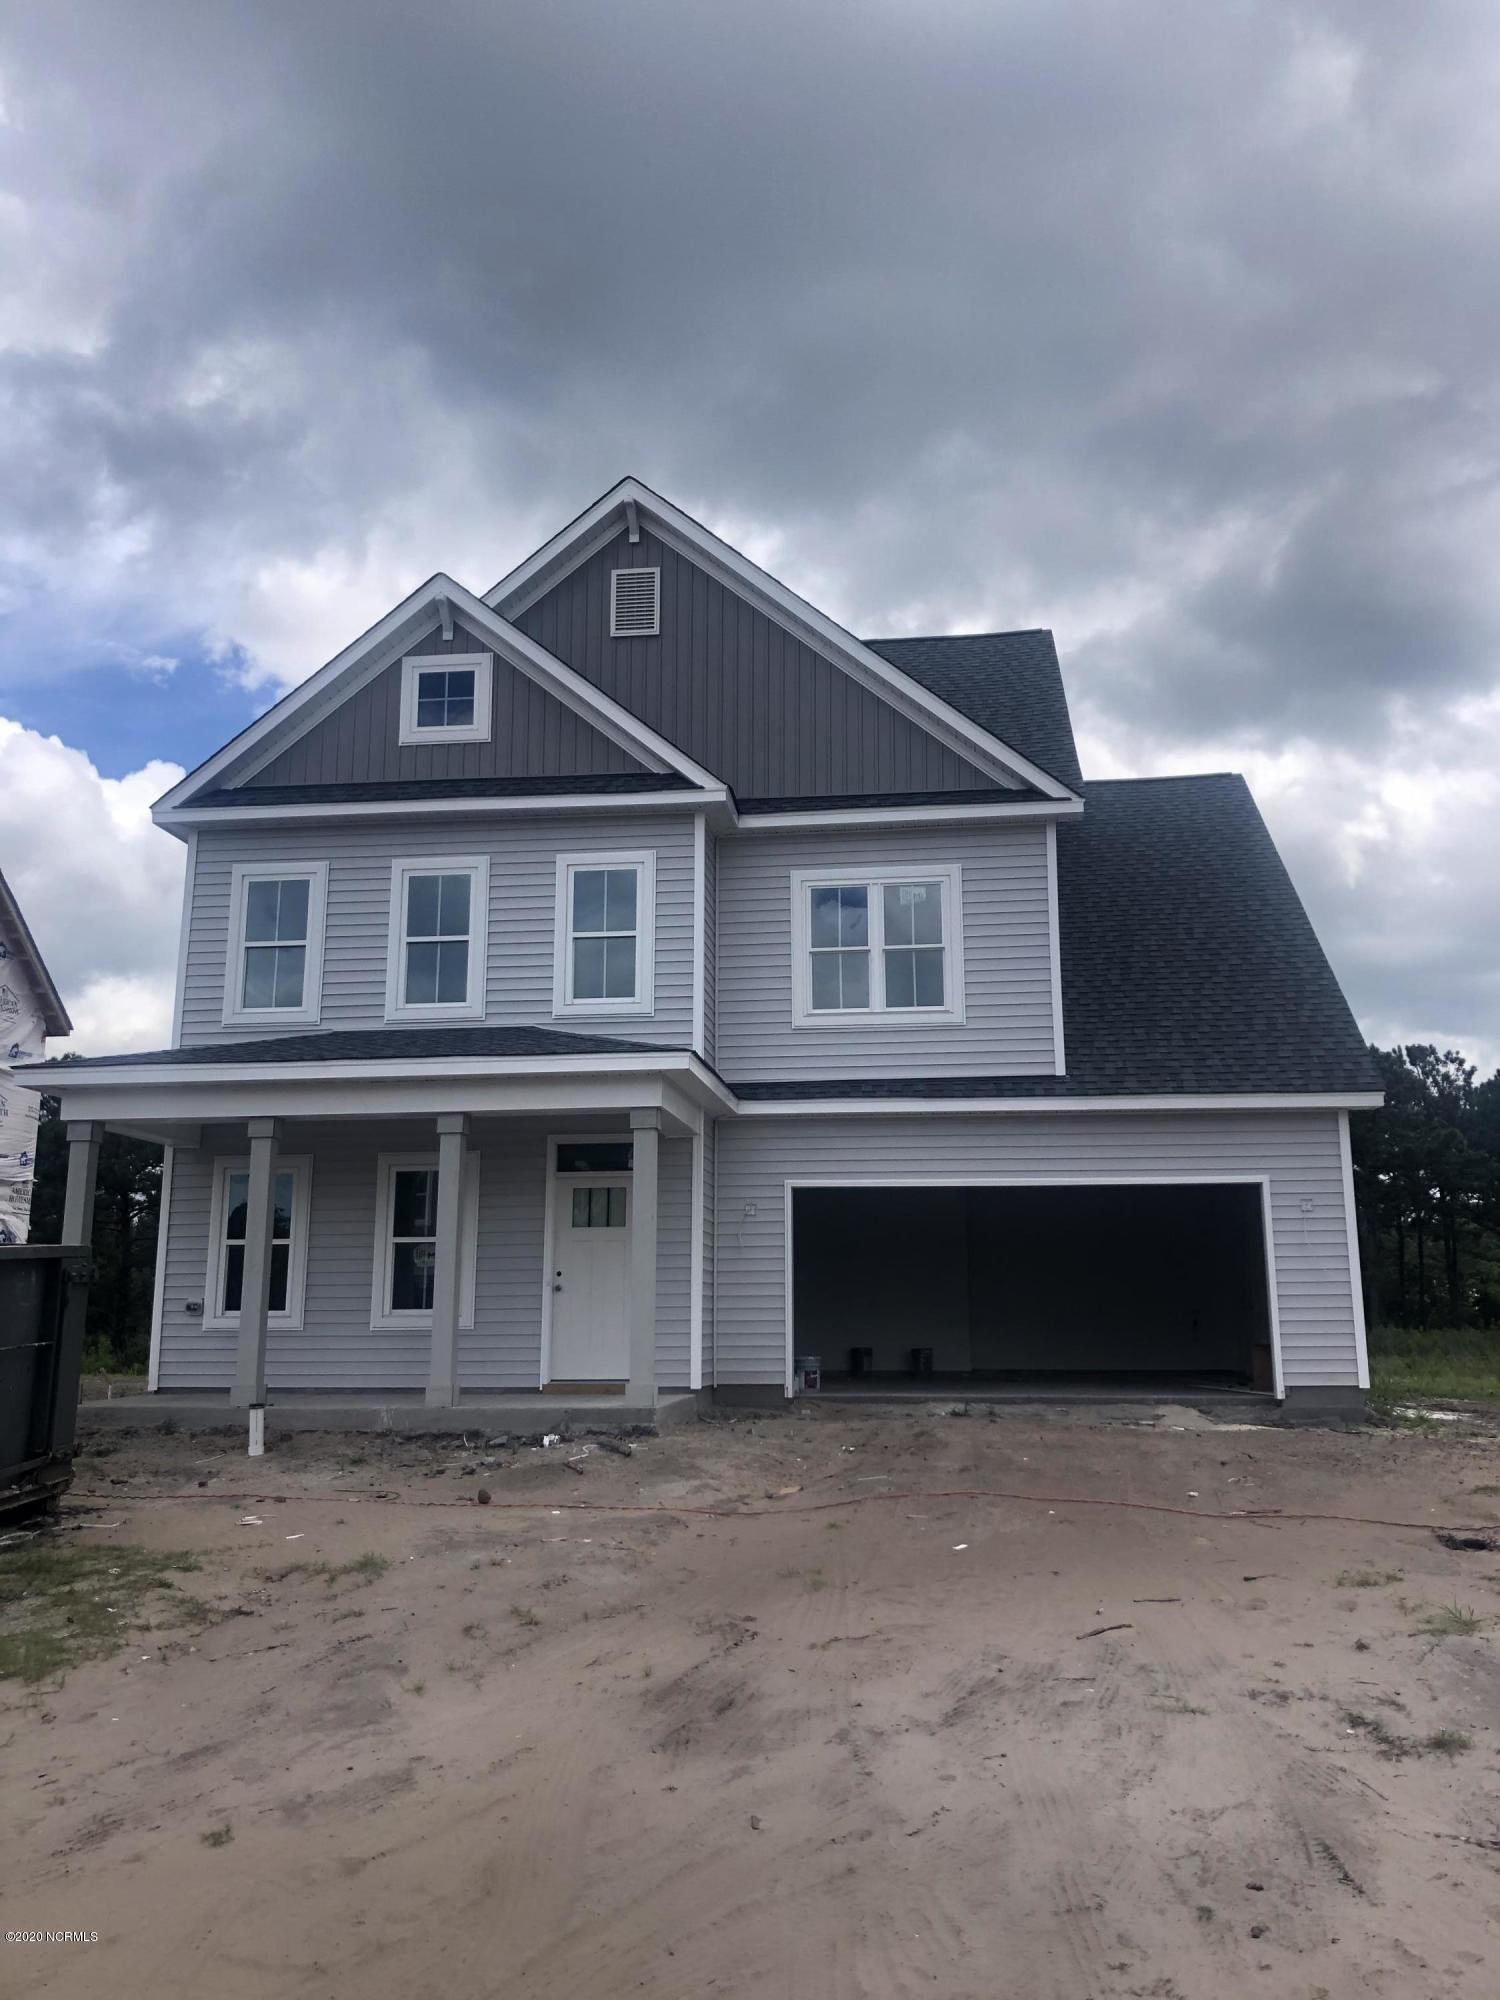 216 Bachmans Trail, Hampstead, North Carolina 28443, 4 Bedrooms Bedrooms, 8 Rooms Rooms,3 BathroomsBathrooms,Single family residence,For sale,Bachmans,100218996